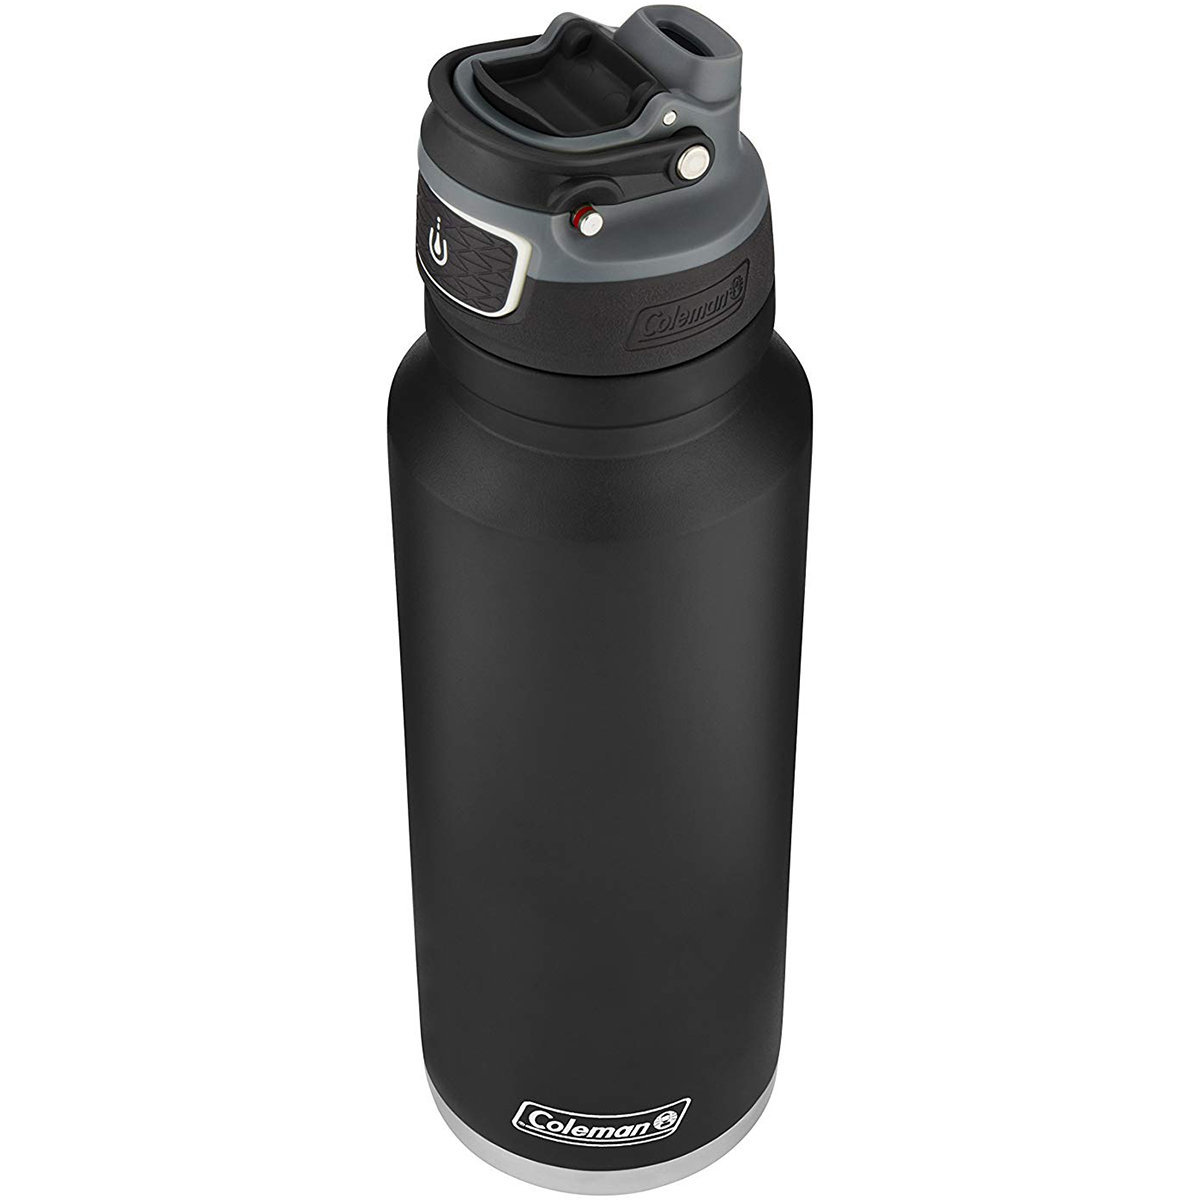 thumbnail 4 - Coleman 40 oz. Free Flow Autoseal Insulated Stainless Steel Water Bottle